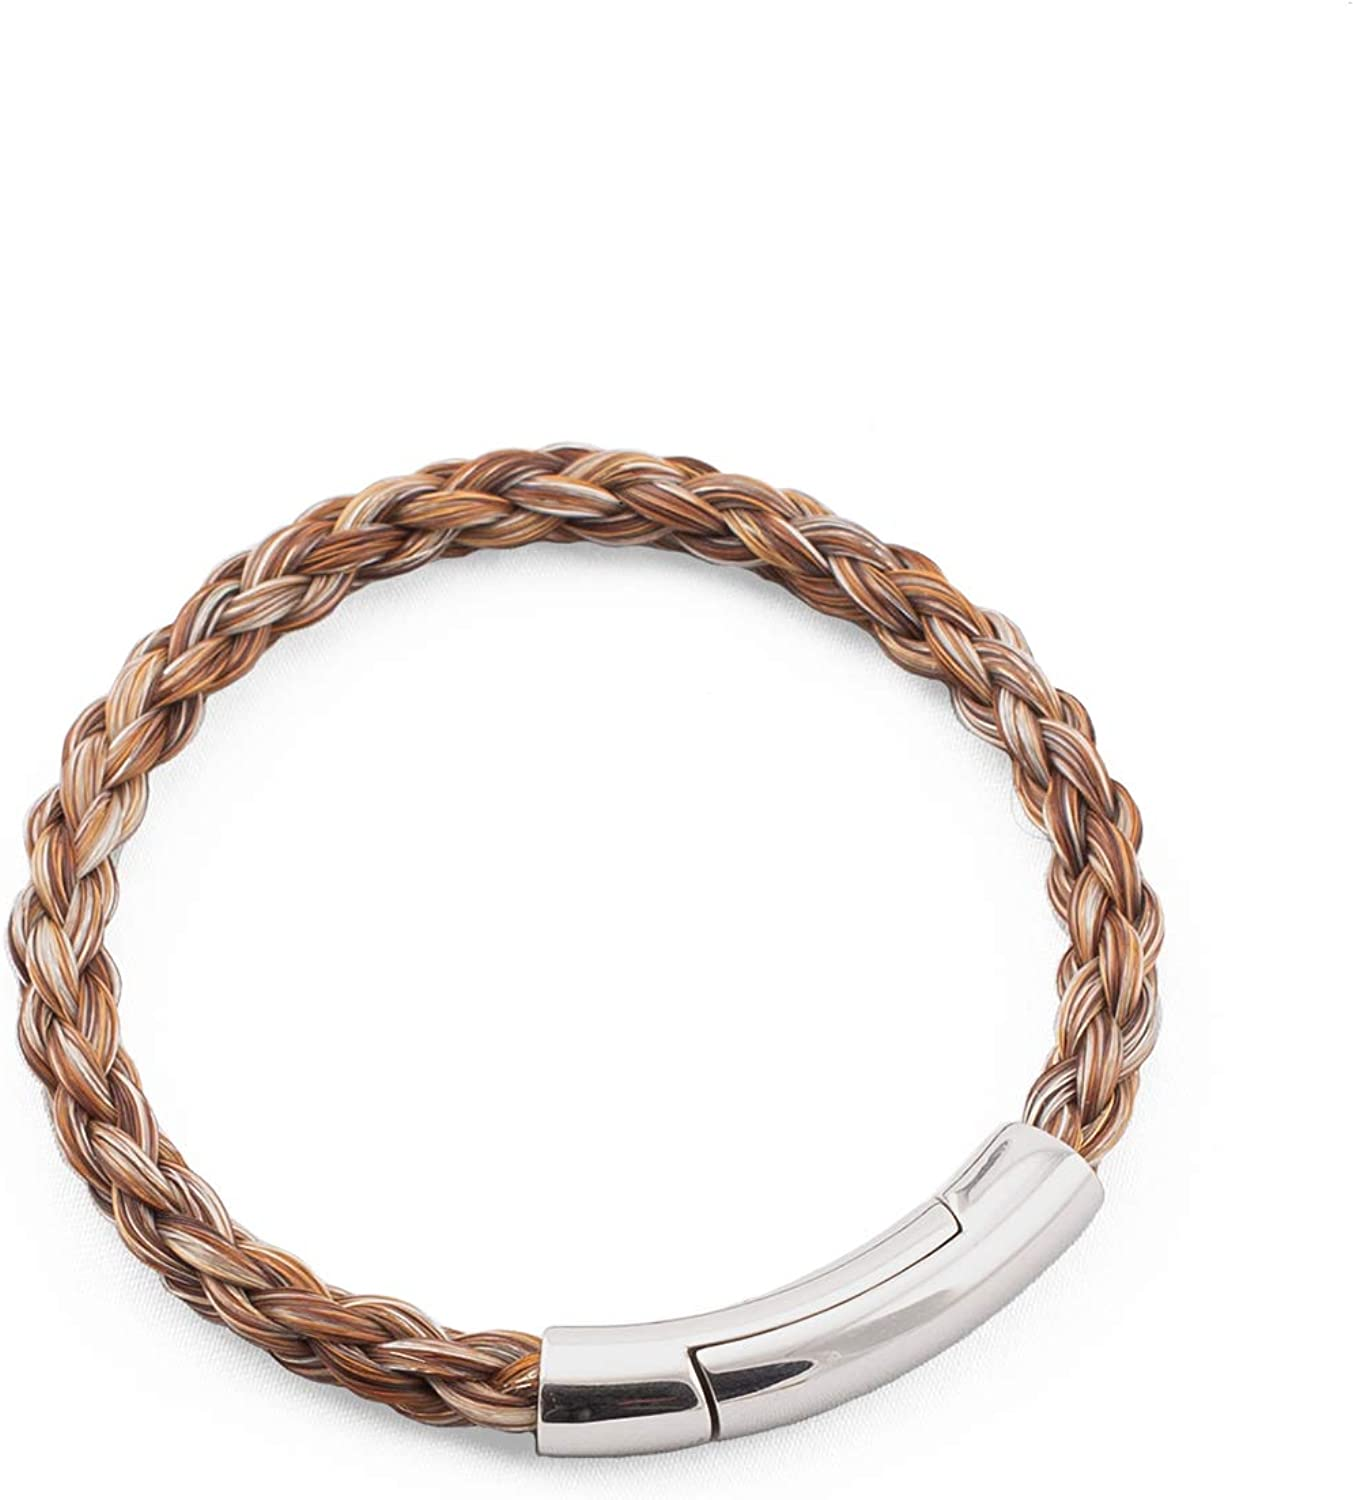 crintiff - Horsehair Bracelet for Men and Women - Collection Montana - Runded Braid - Choice of 5 Colors - Size from 6.7 to 8.3in